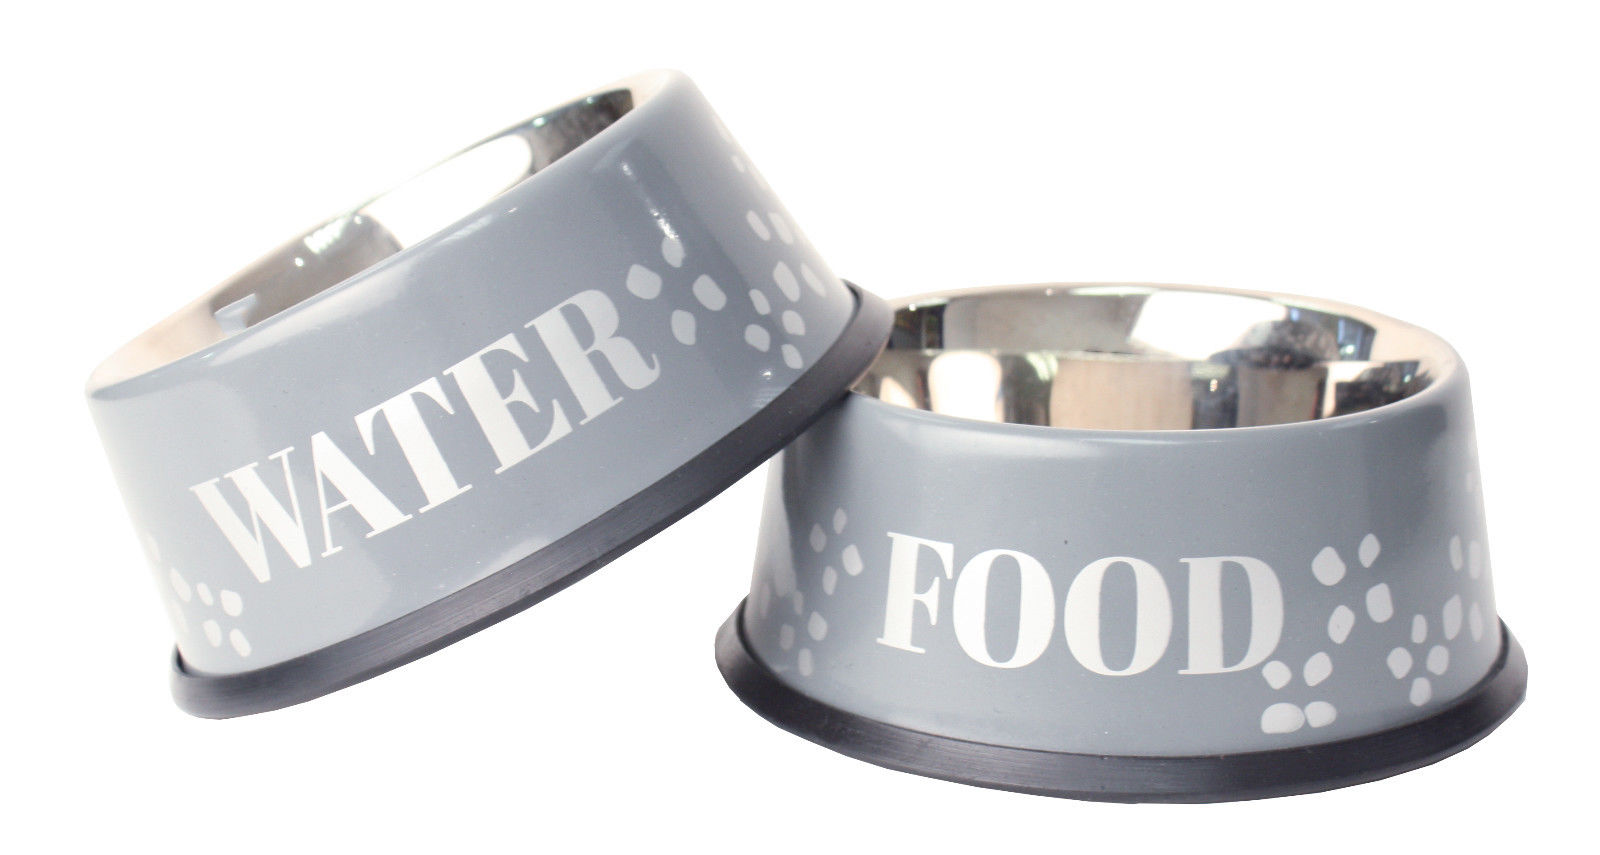 Dog's food and water bowls